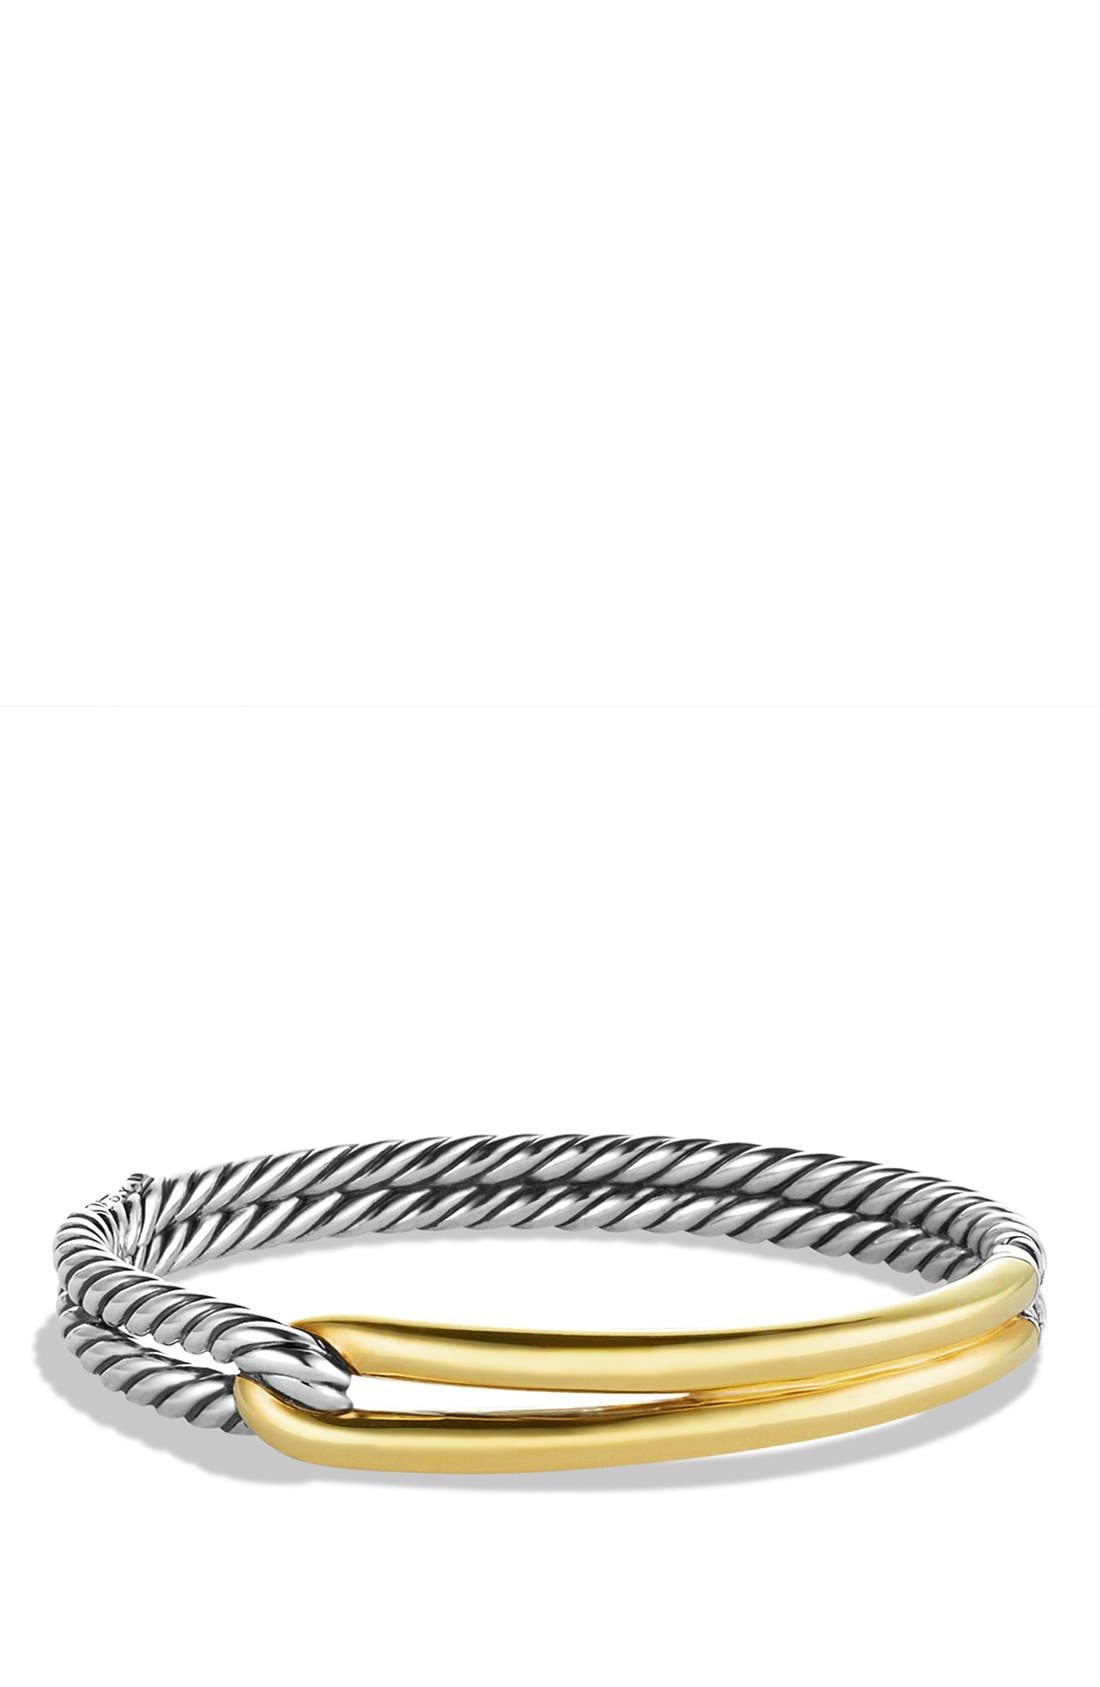 'Labyrinth' Single-Loop Bracelet with Gold,                             Main thumbnail 1, color,                             TWO TONE